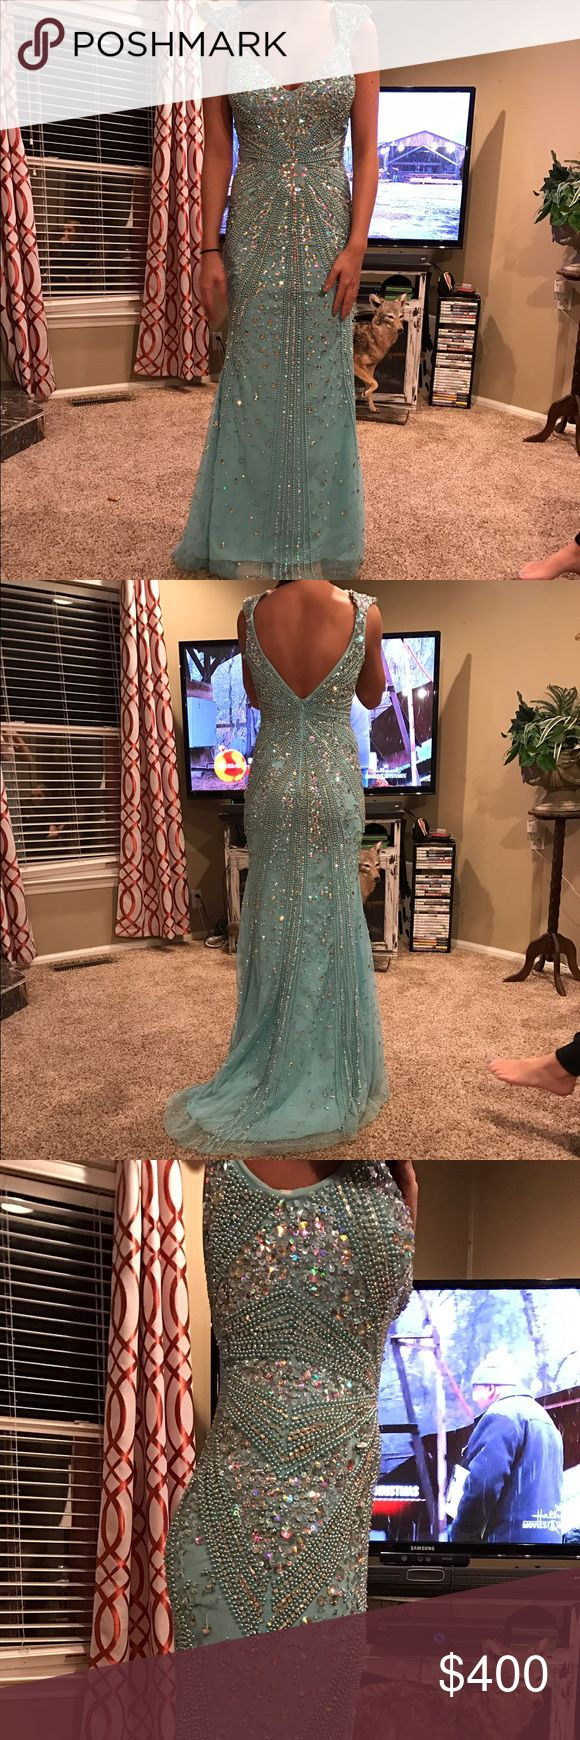 Beautiful prom dress for sale!!! Size 4 Tiffany & Co. prom dress. Has been altered to my height (5'4). It has a long beautiful train on it with stunning beads. Only worn once for about 5 hours. Bought it original at $800. To rent, $275 but can be negotiated. To buy, $400 but can be REASONABLY negotiated because this dress is so expensive. Tiffany & Co. Dresses Prom